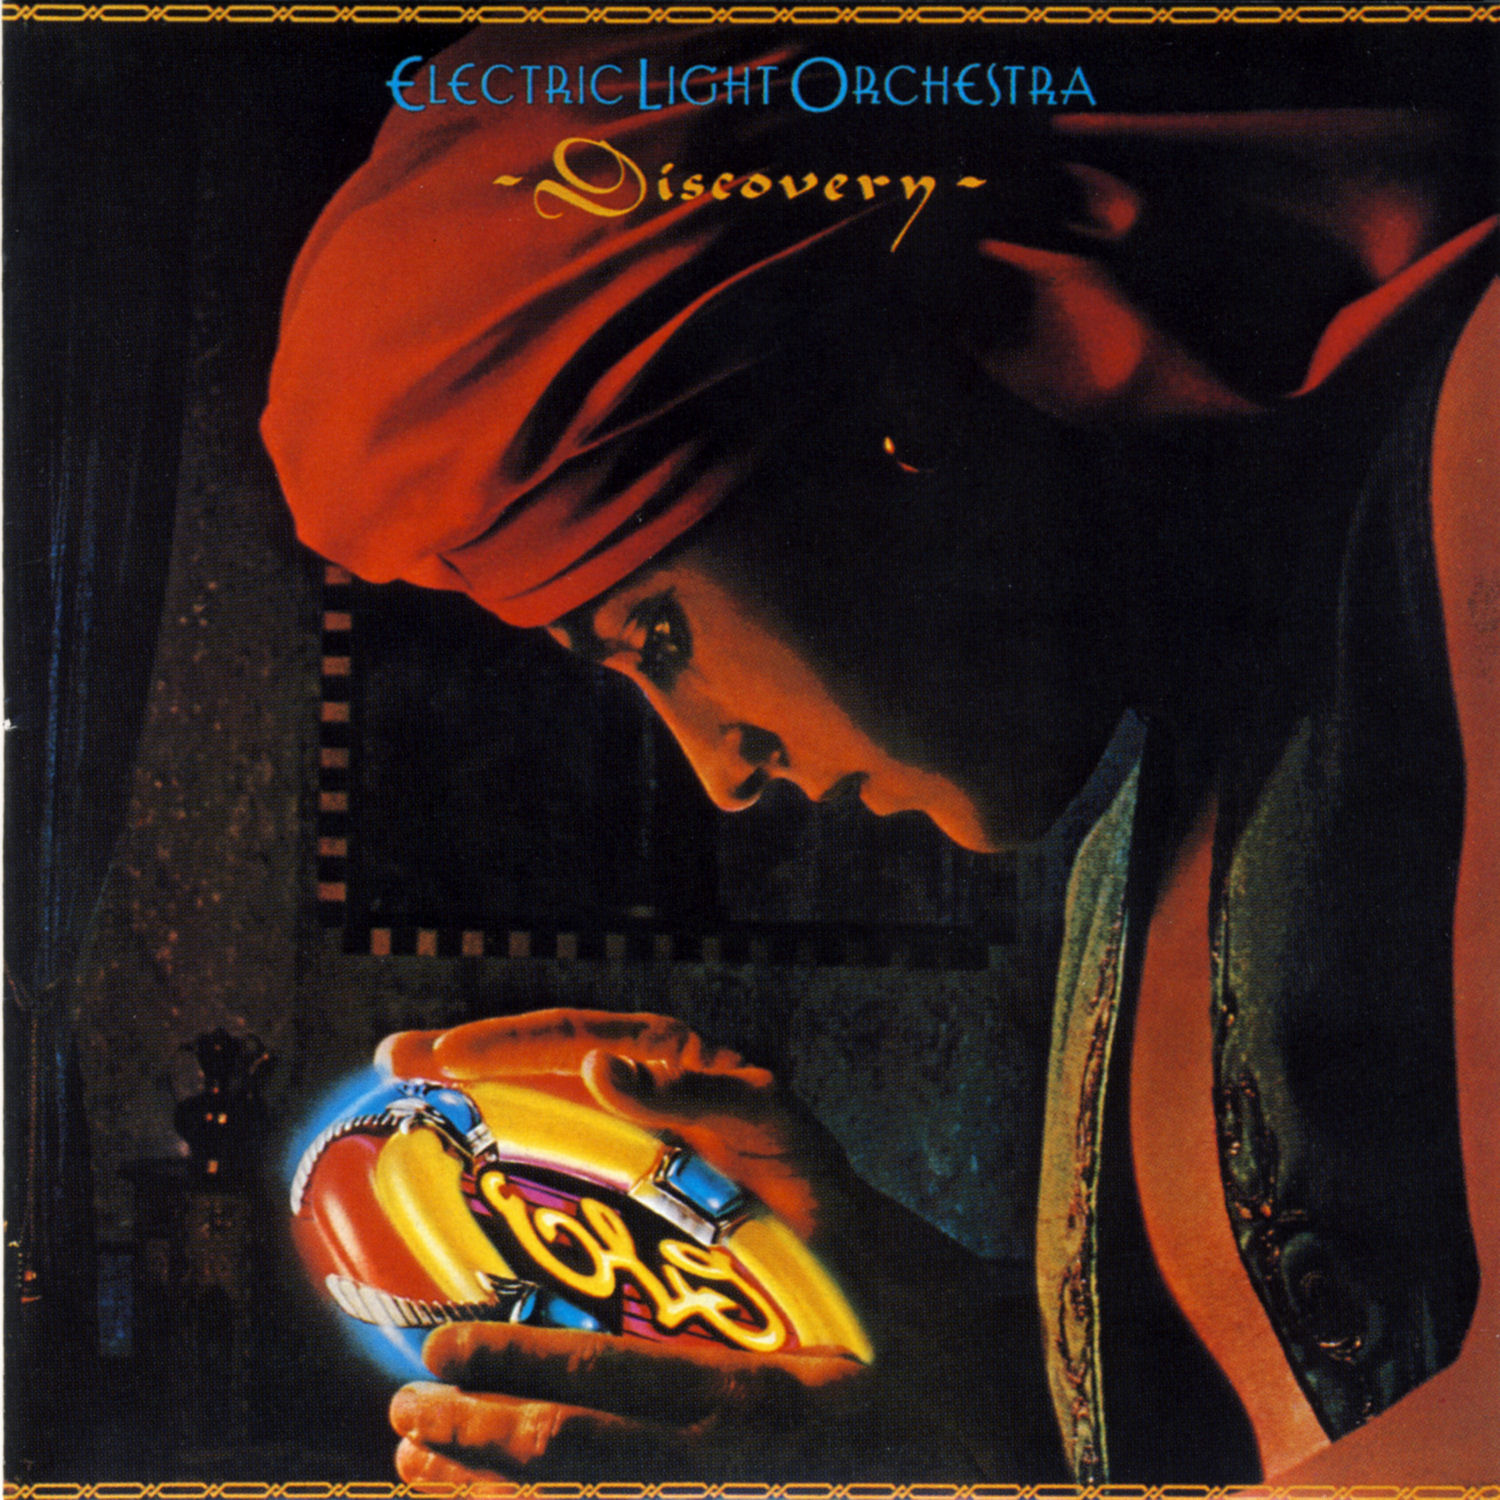 1979 Electric Light Orchestra Discovery Mecca Lecca